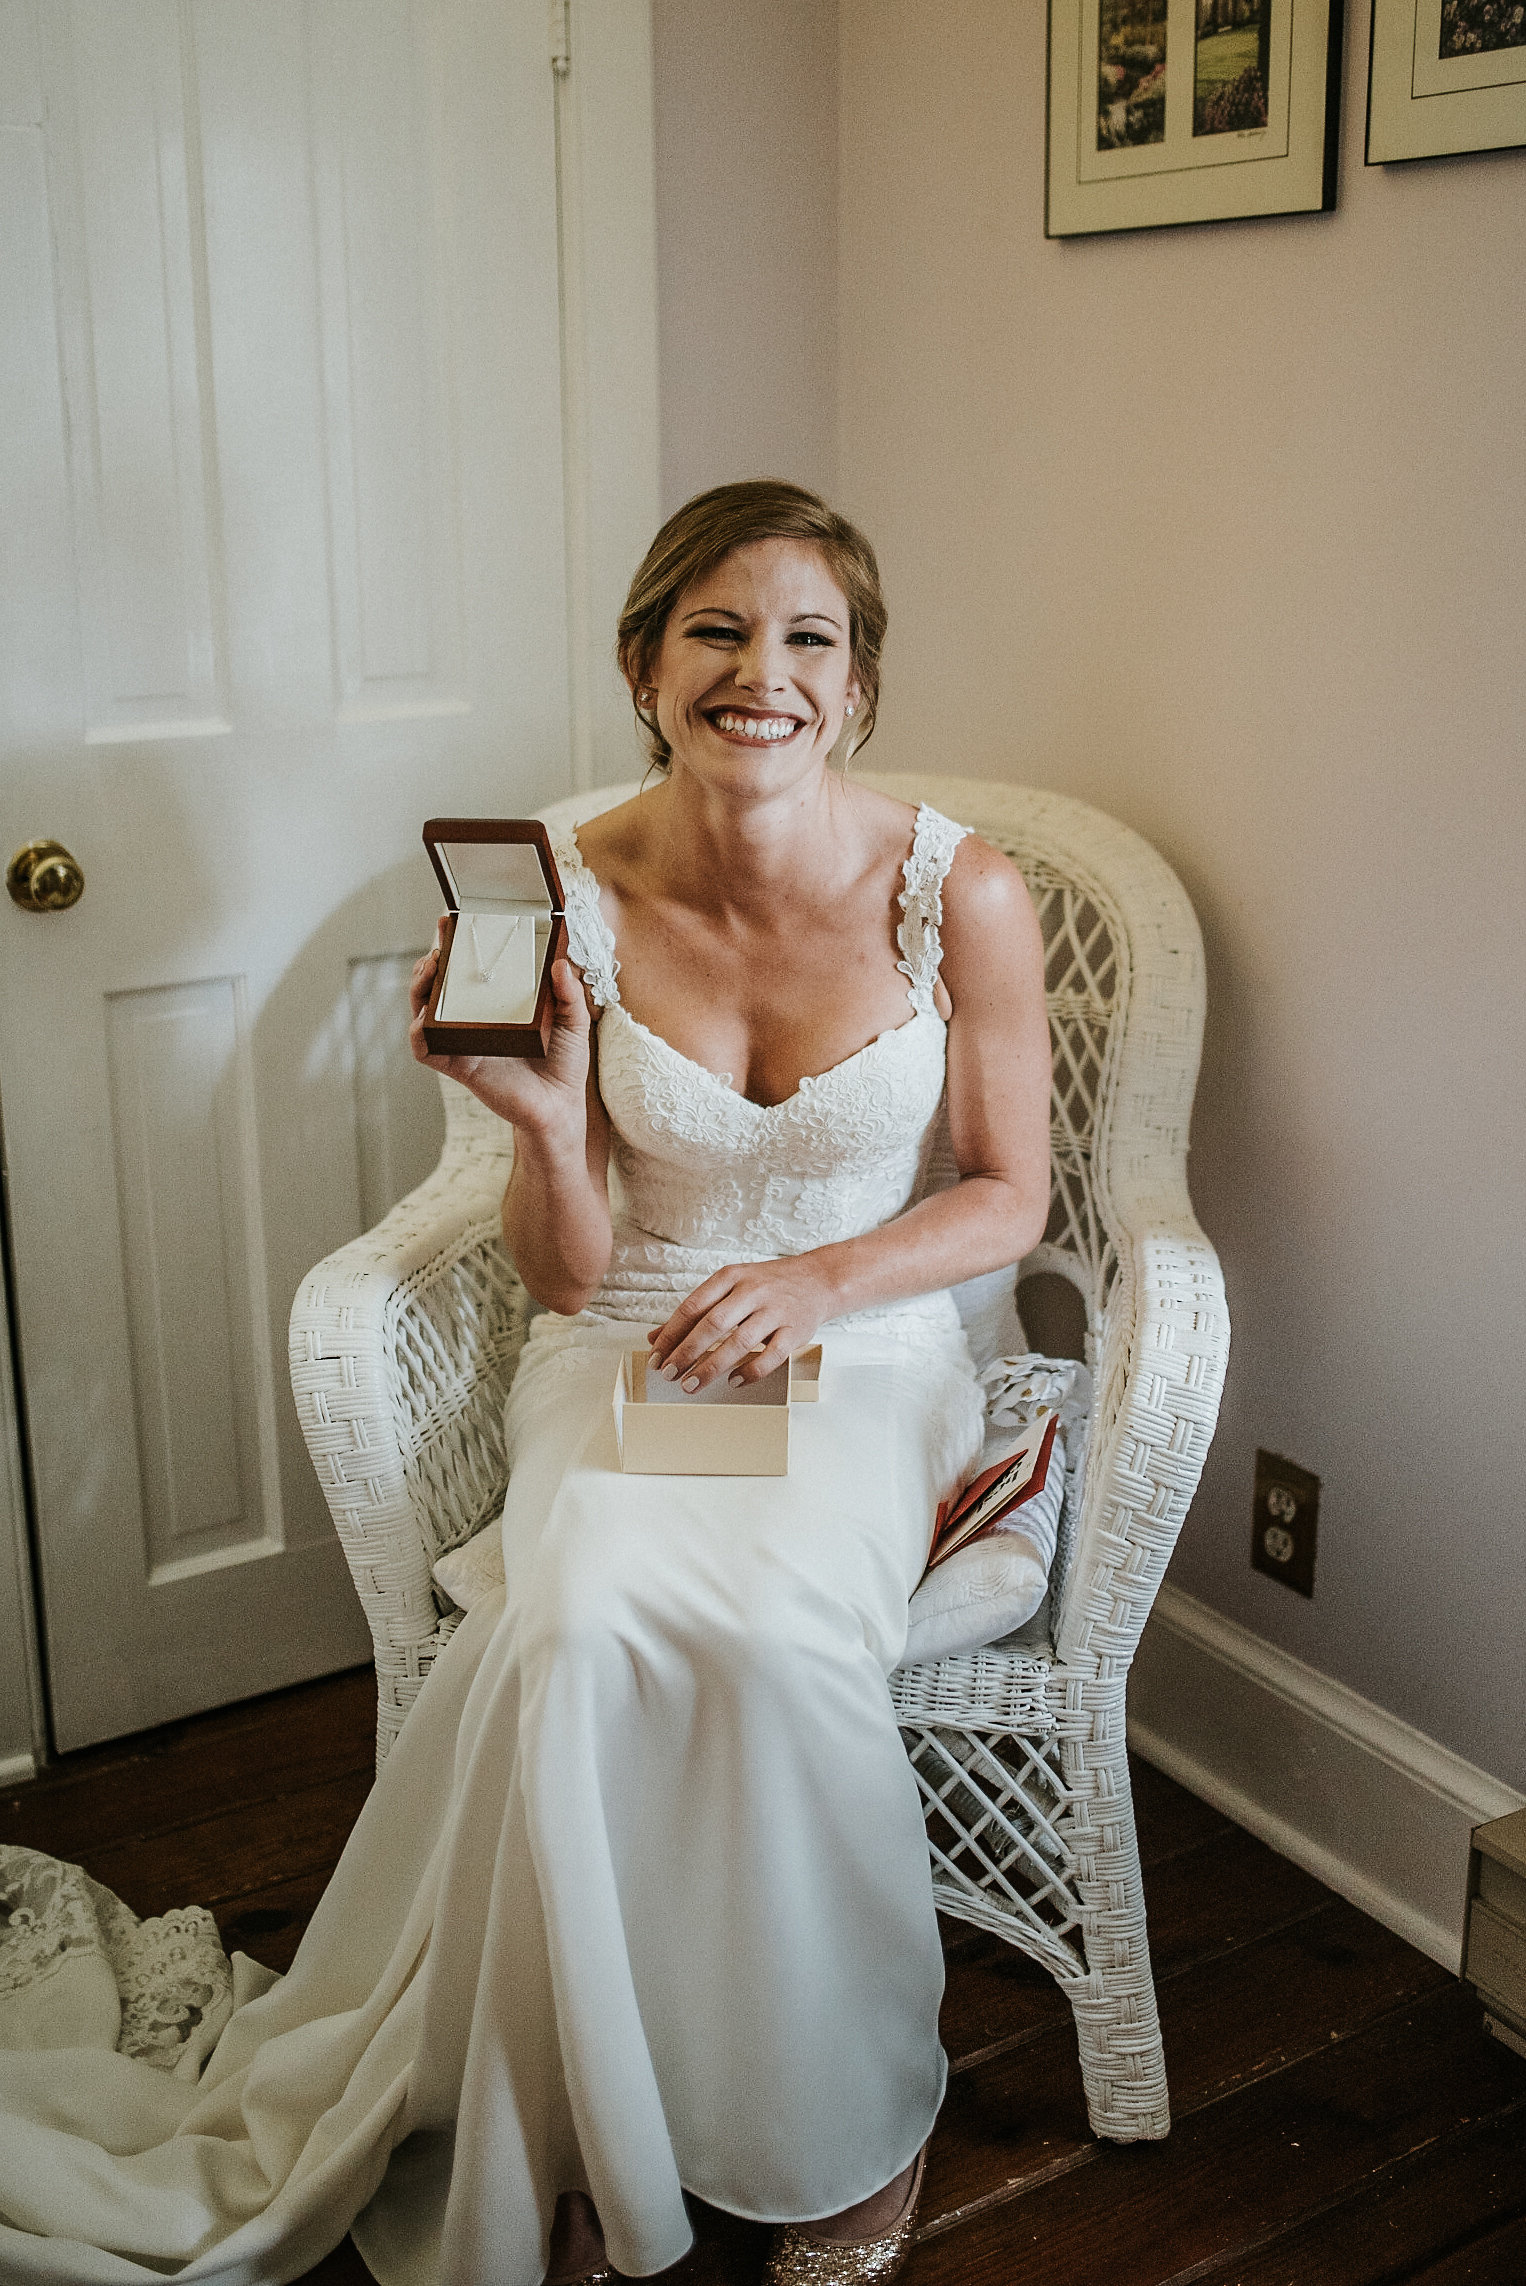 Bride with necklace from groom